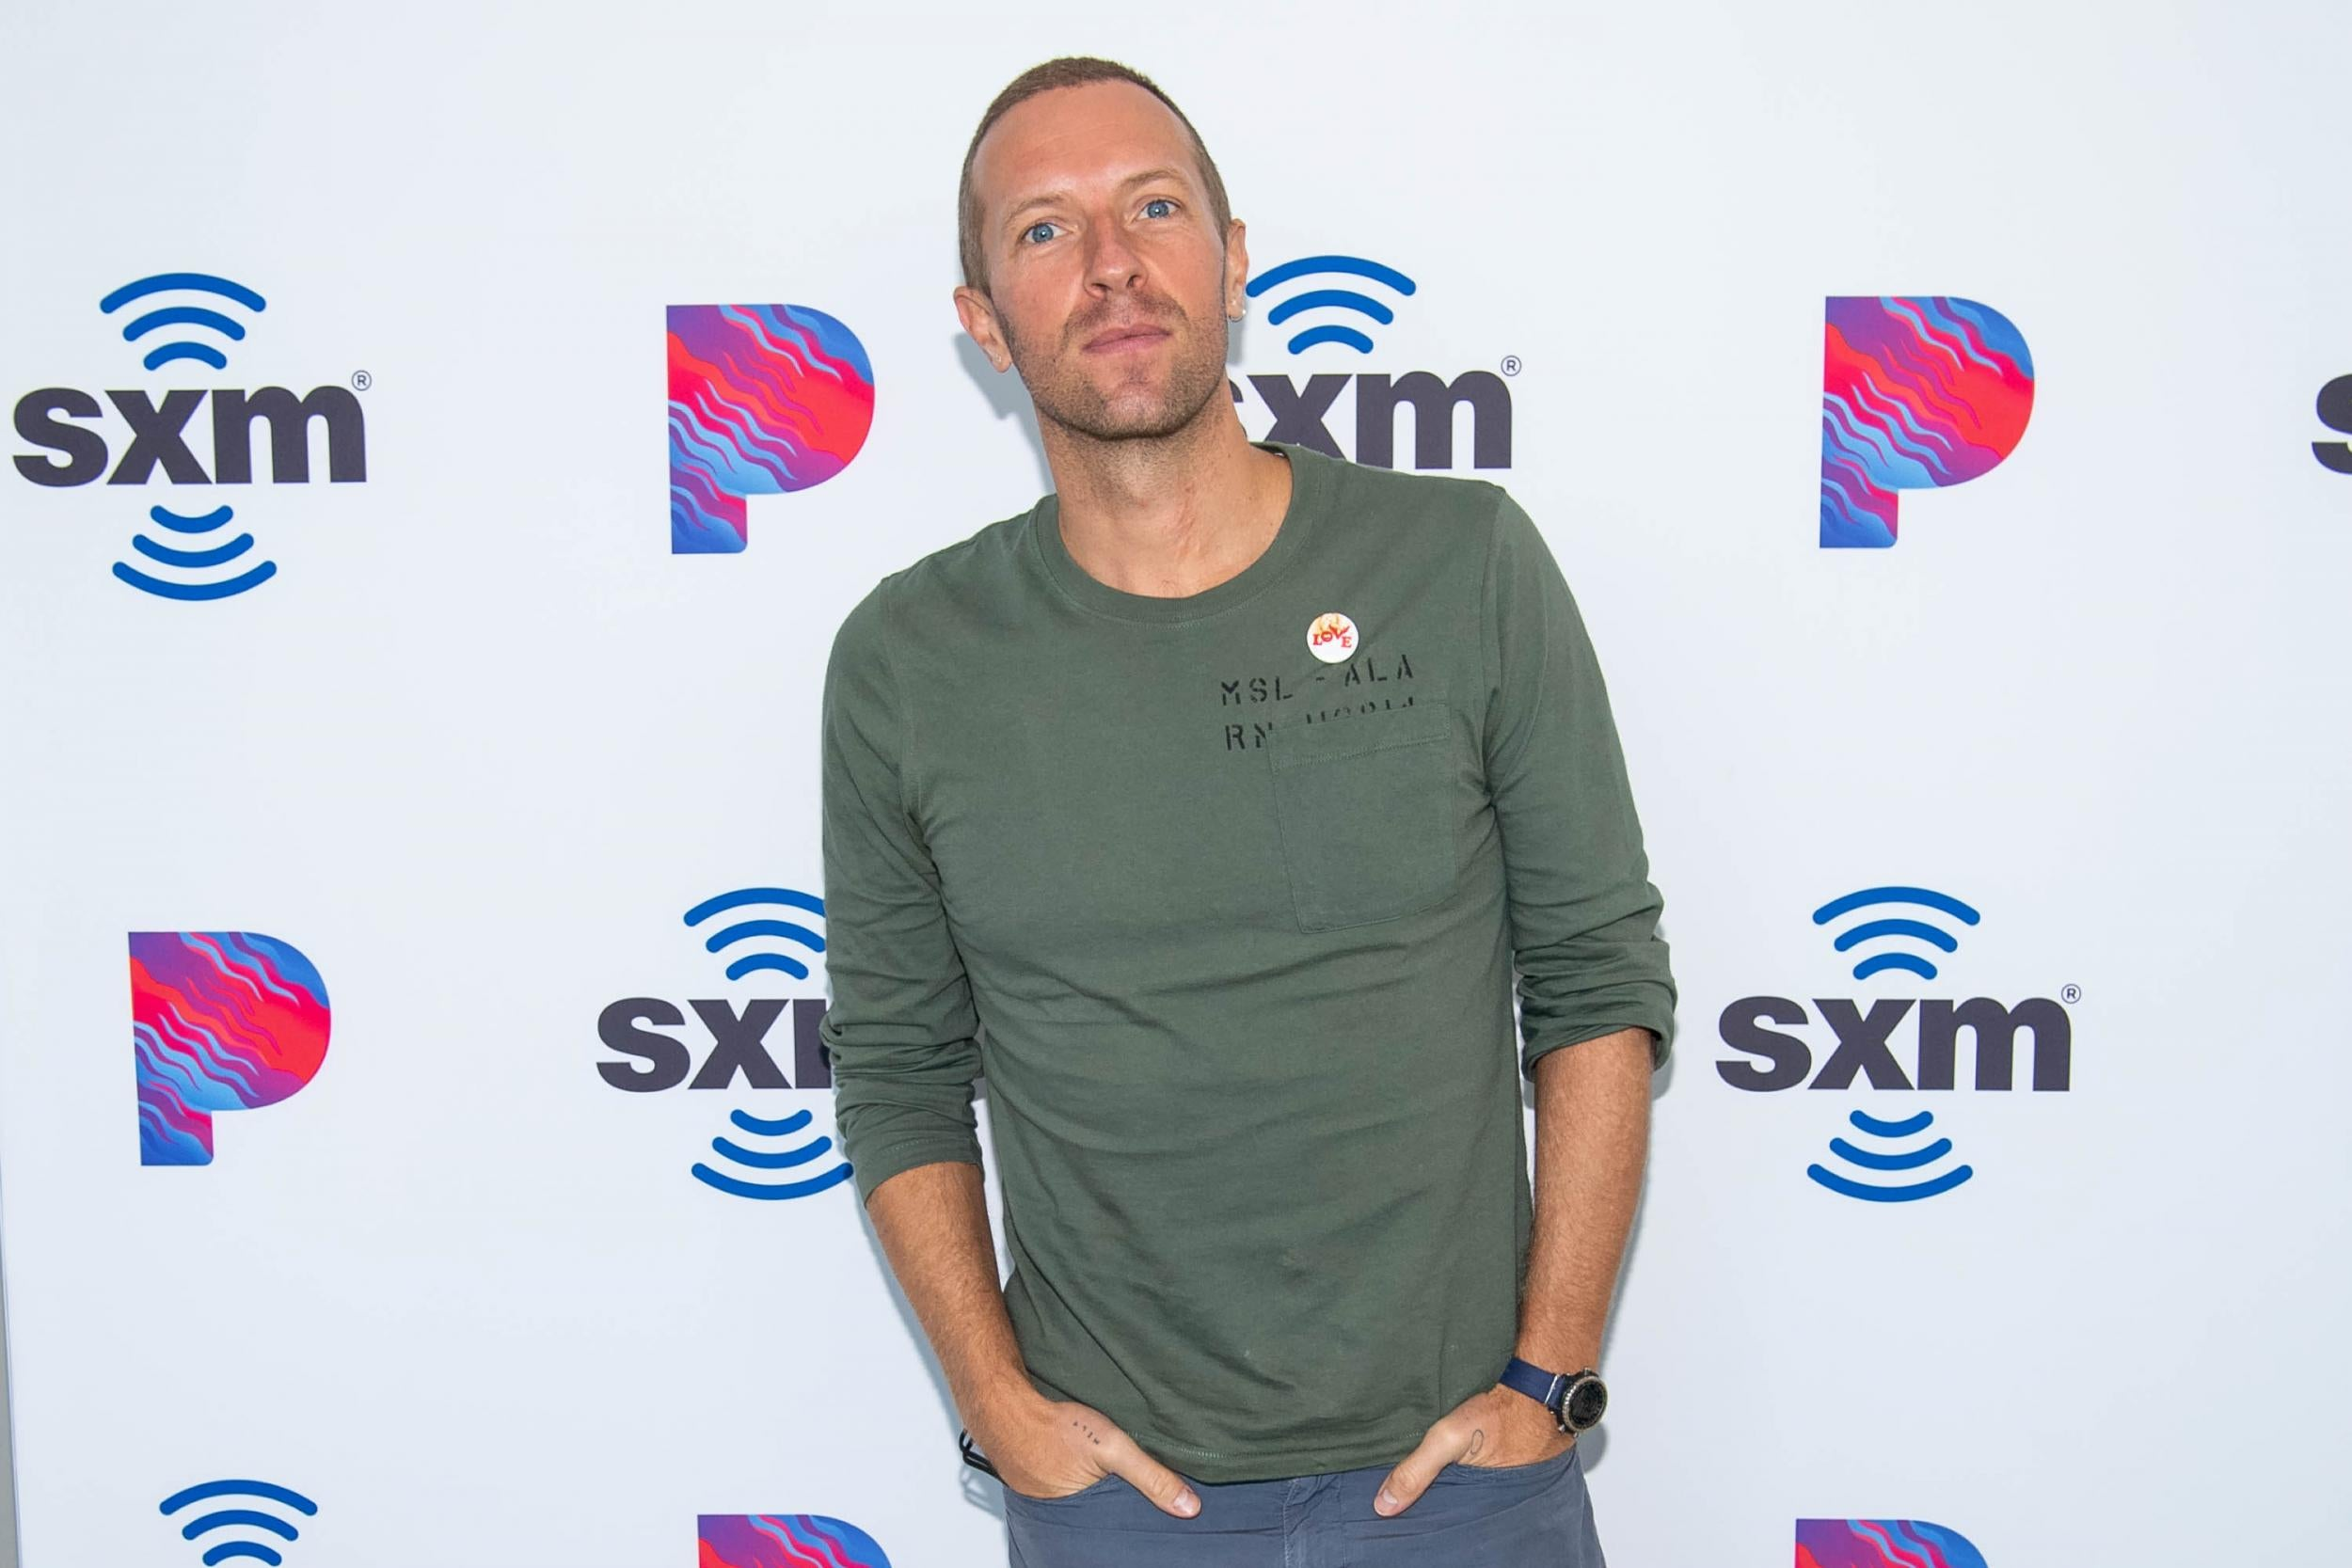 Chris Martin reprimands 'aggressive' fans asking for autographs: 'Don't f***ing shout at me'